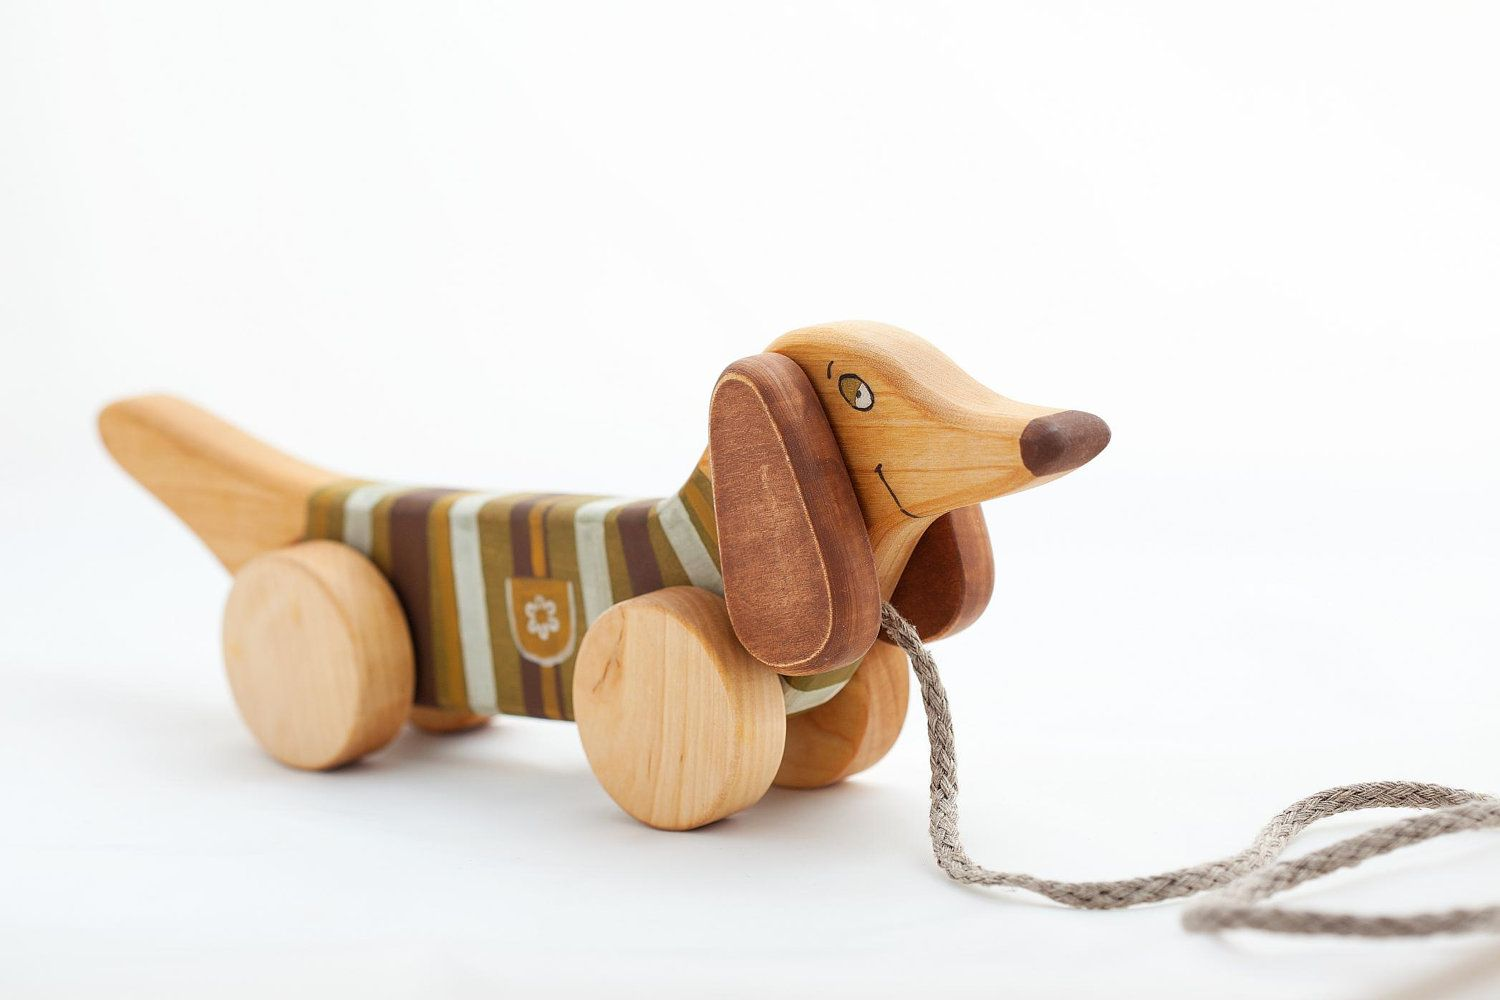 Pull Dog Kids Wooden Toy Dog Pull Toy Dog Wood Toddlers Toy